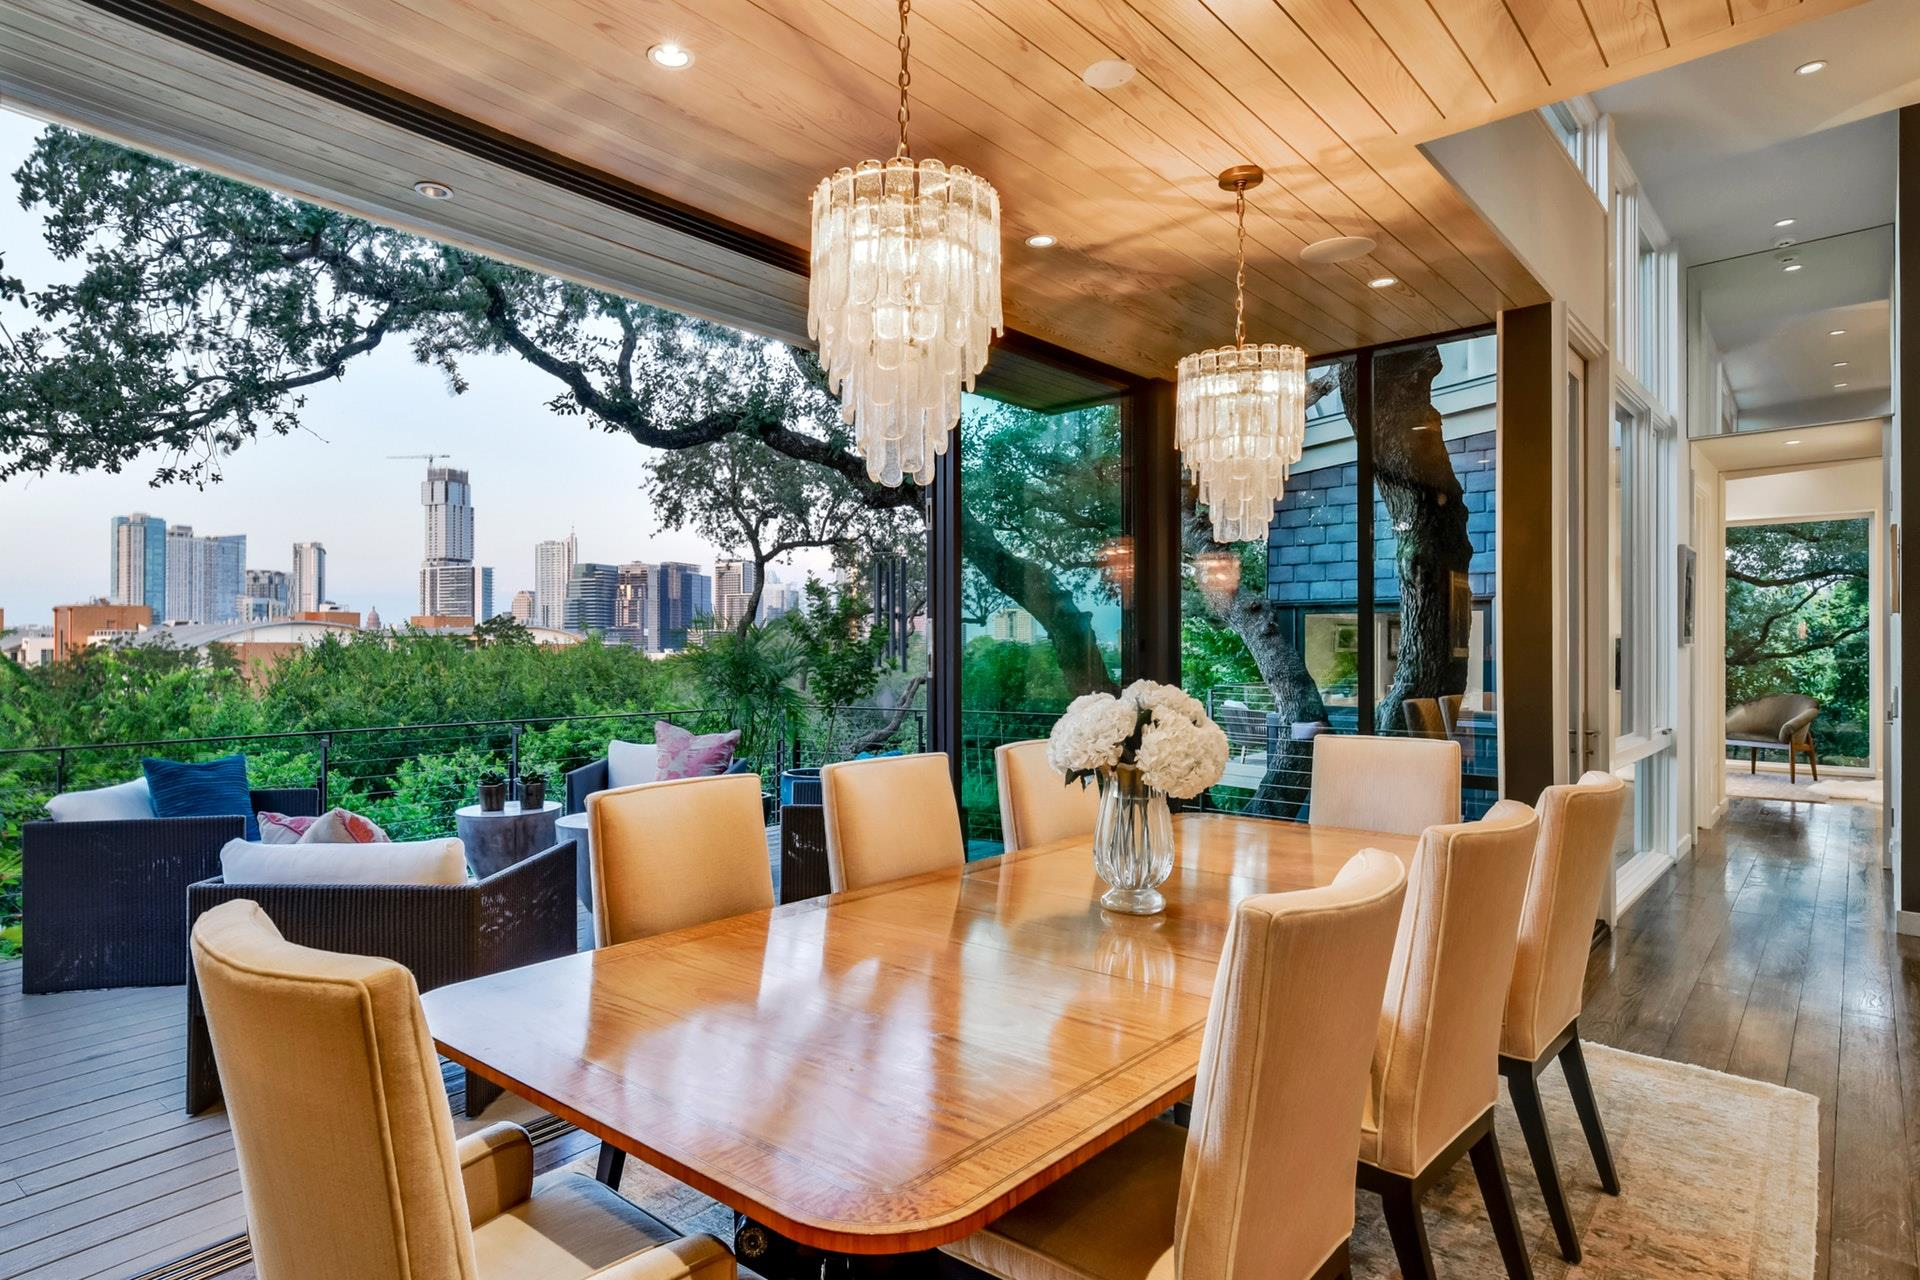 Austin Real Estate And Homes For Sale Christies International Flats Laken Beige 38 Single Family Home At 1612 Meghan Lane Texas